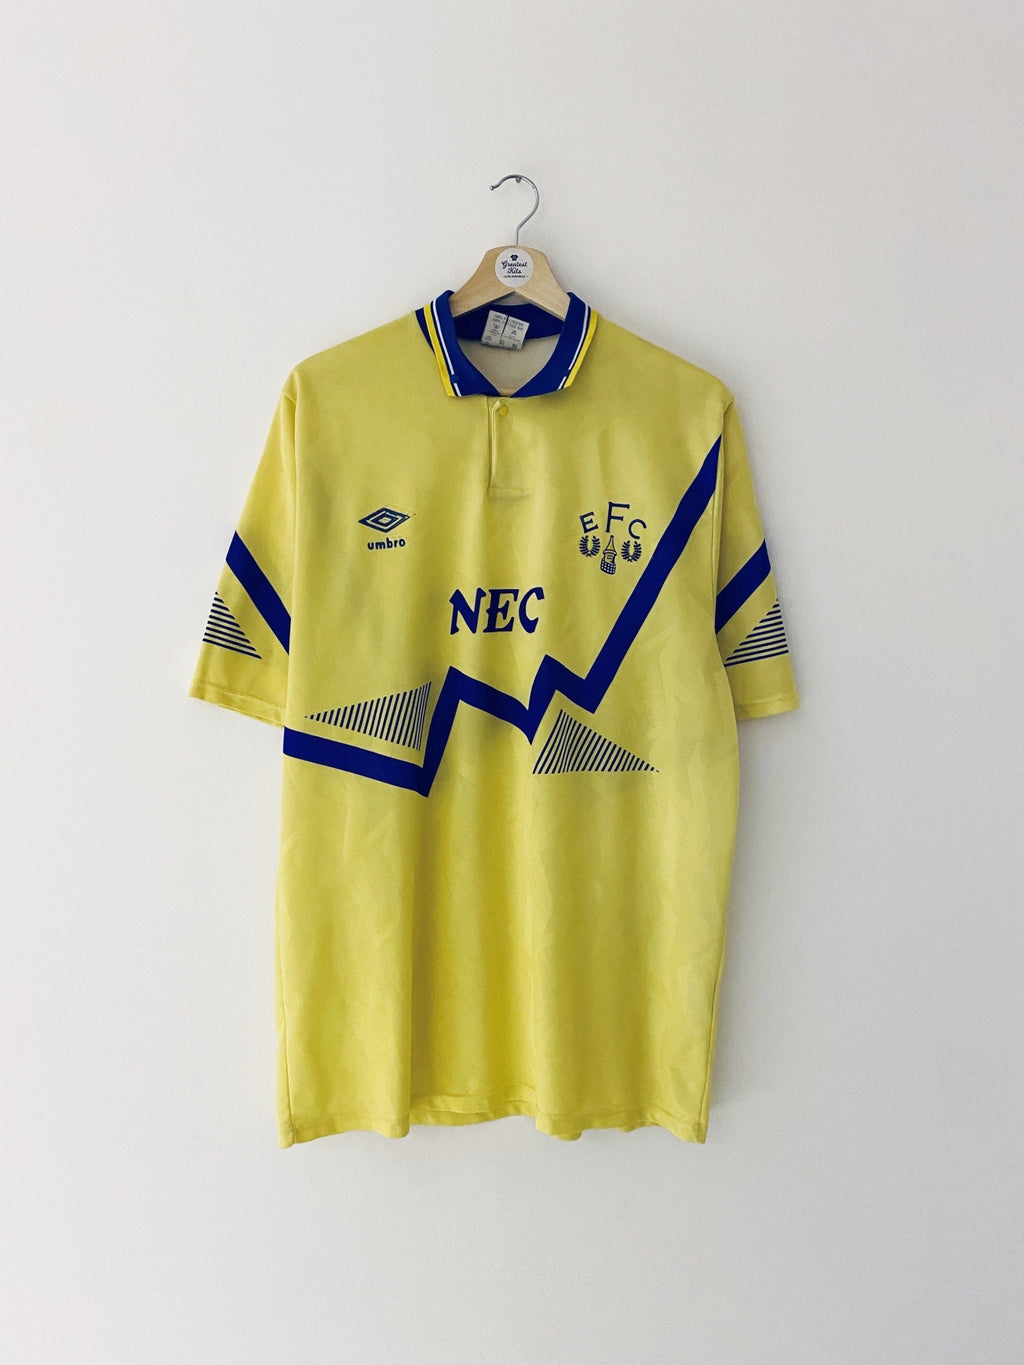 1990/92 Everton Away Shirt (L) 7.5/10